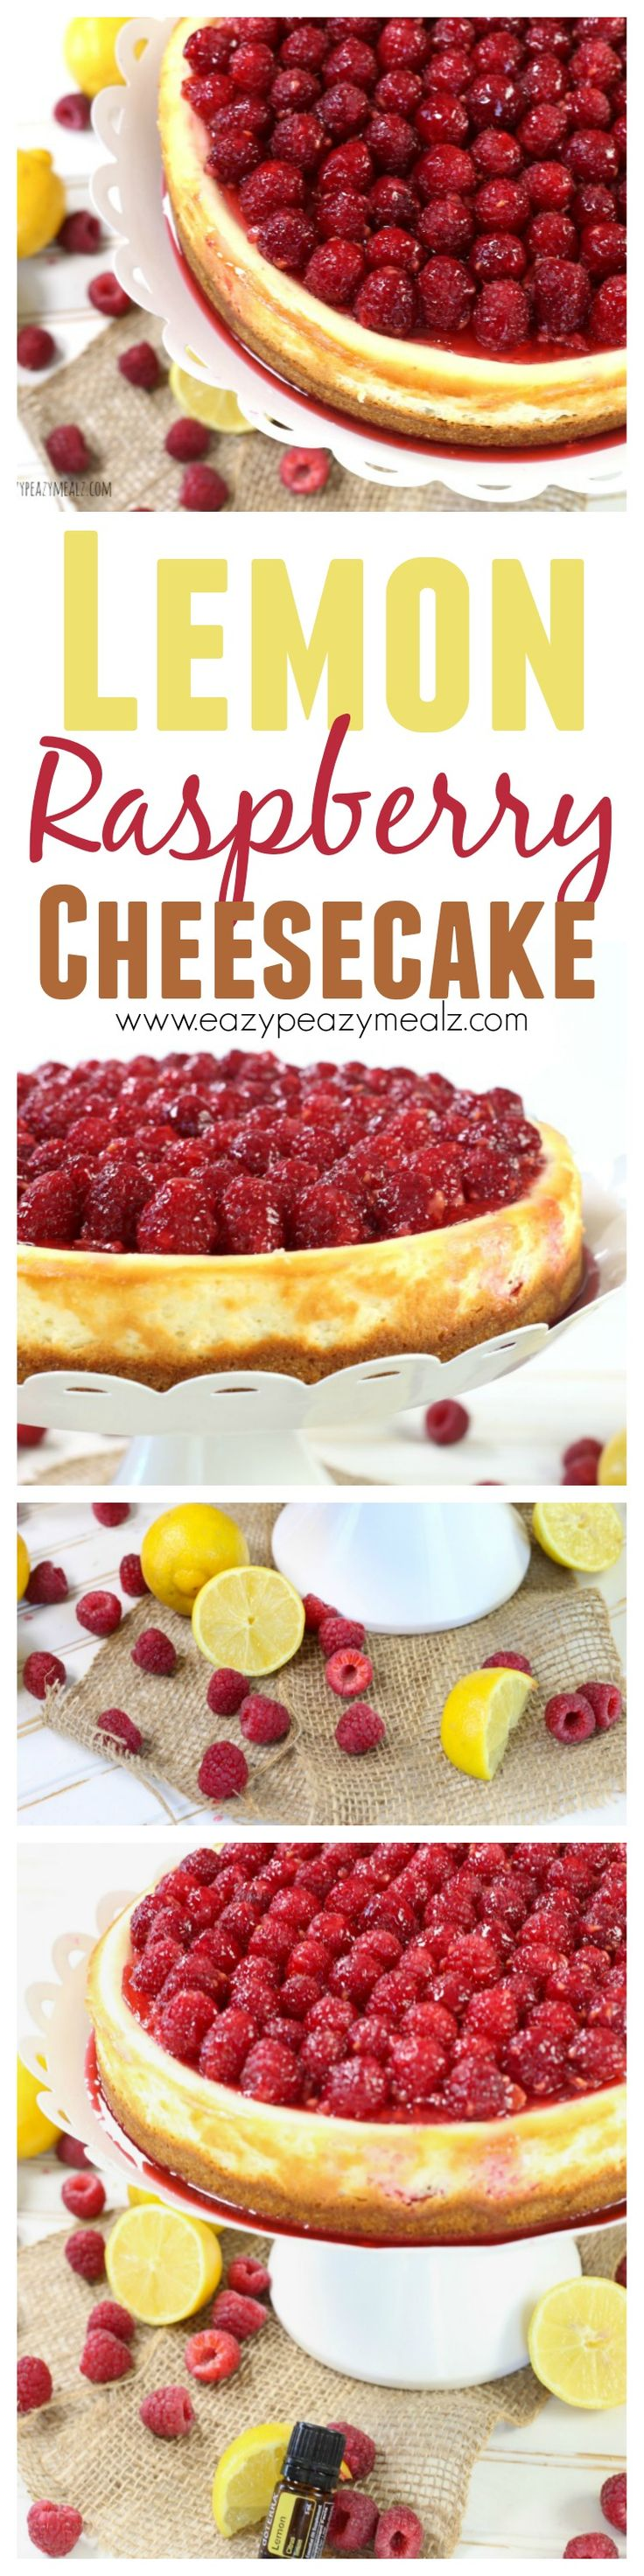 An easy to make lemon raspberry cheesecake. This beautiful dessert is perfect for Spring, make it for Mother's Day! #sp - Eazy Peazy Mealz